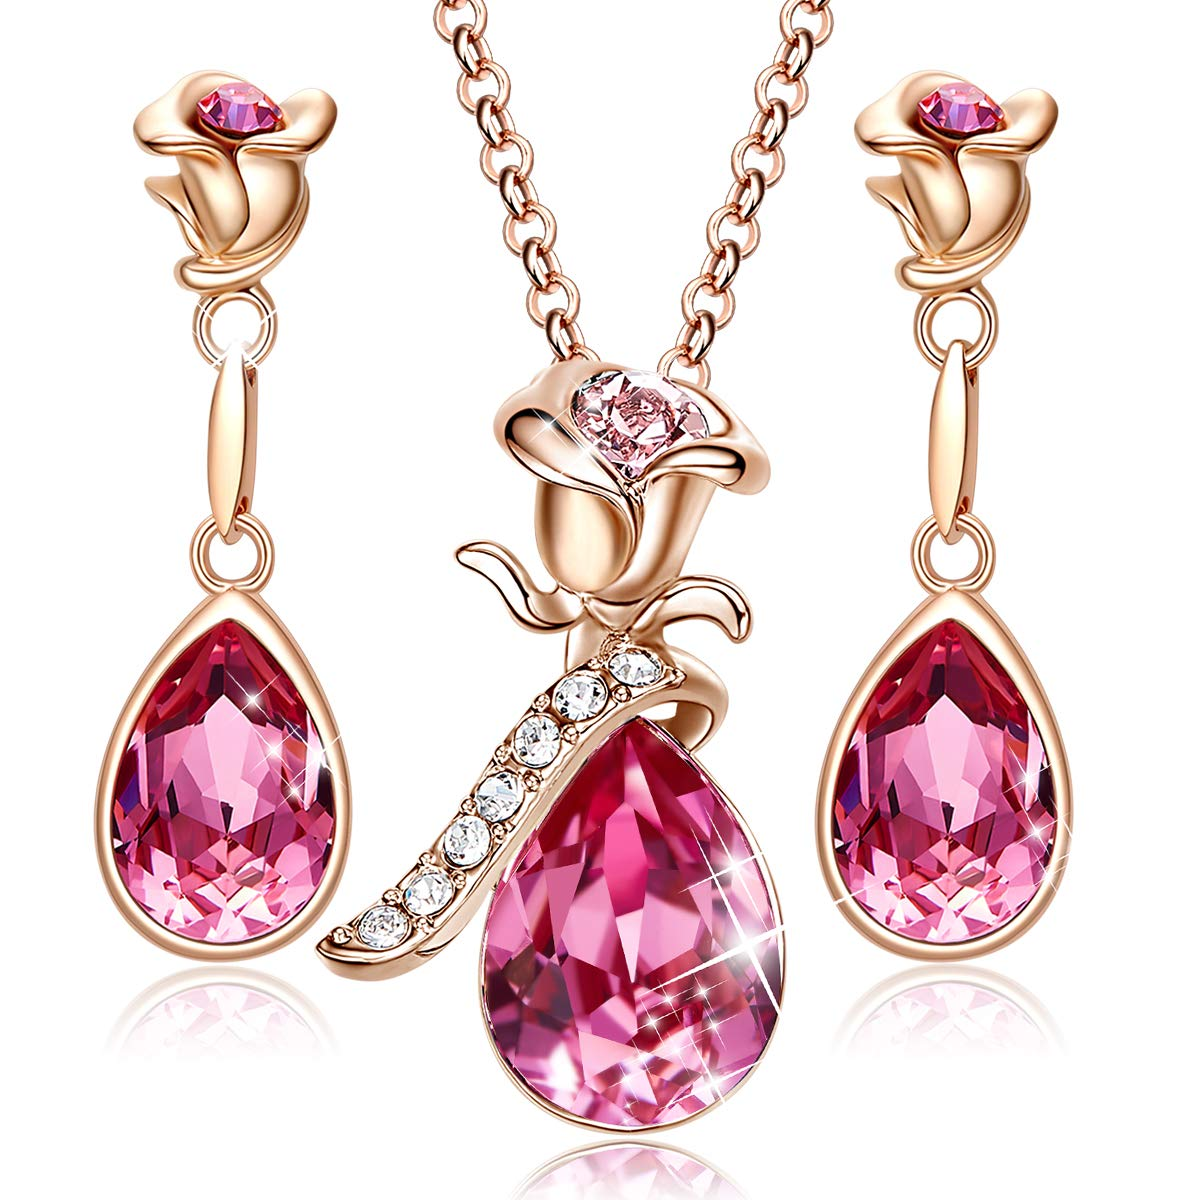 CDE Jewelry Set for Women Pink Flower Rose Gold Plated Pendant Embellished with Crystals from Swarovski Necklace and Earrings Set Gift by CDE